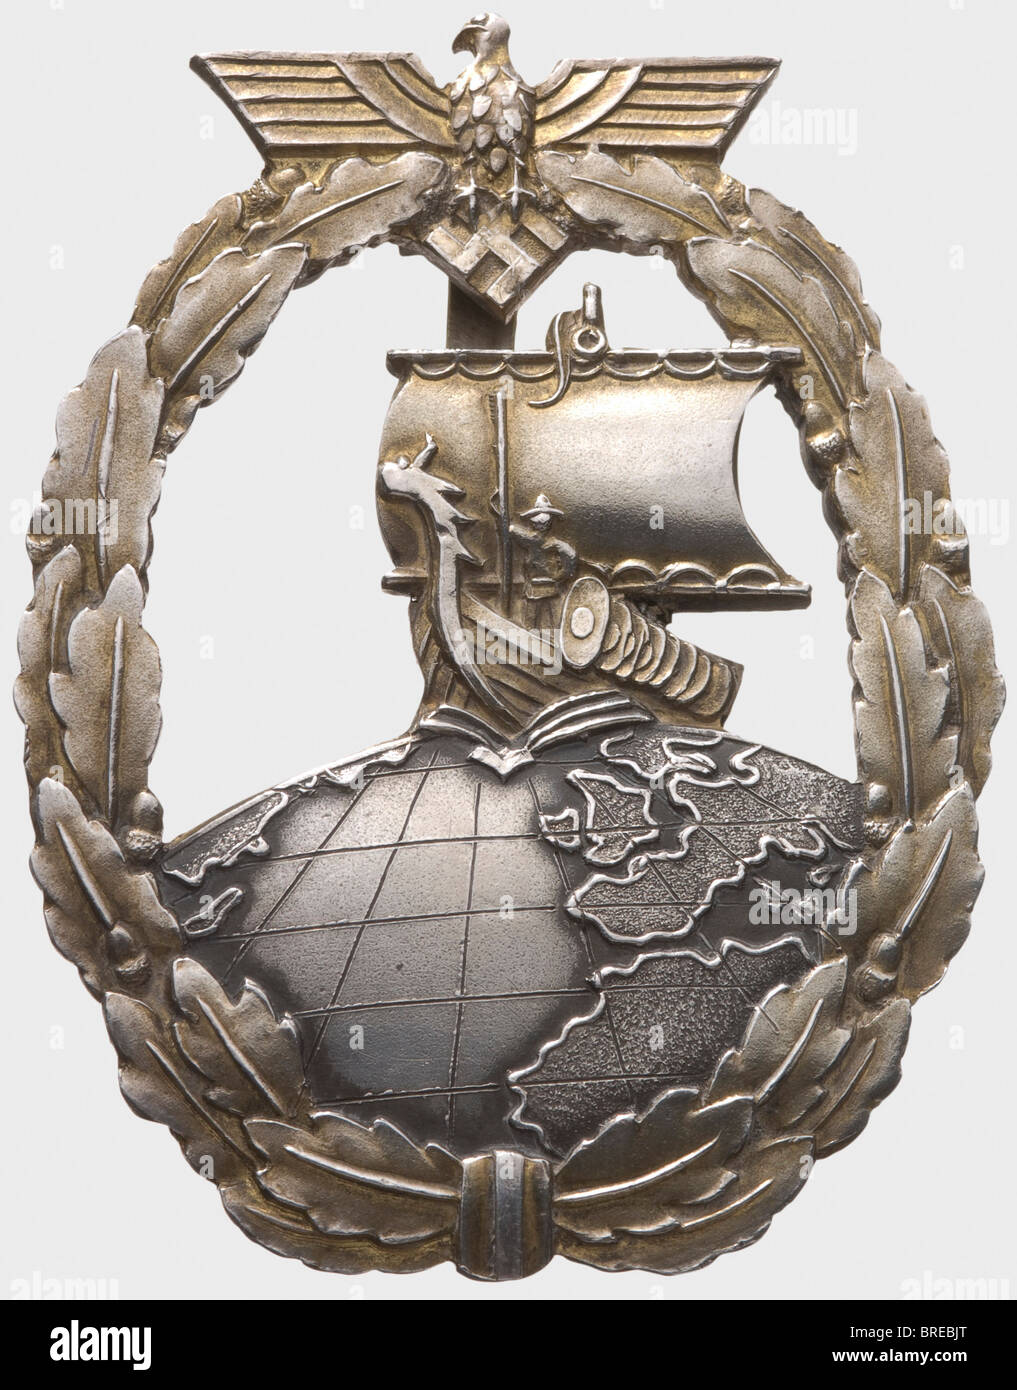 A Auxiliary Cruisers War Badge in sterling silver, for the crew of auxiliary cruiser 'Thor' One-piece silver - Stock Image